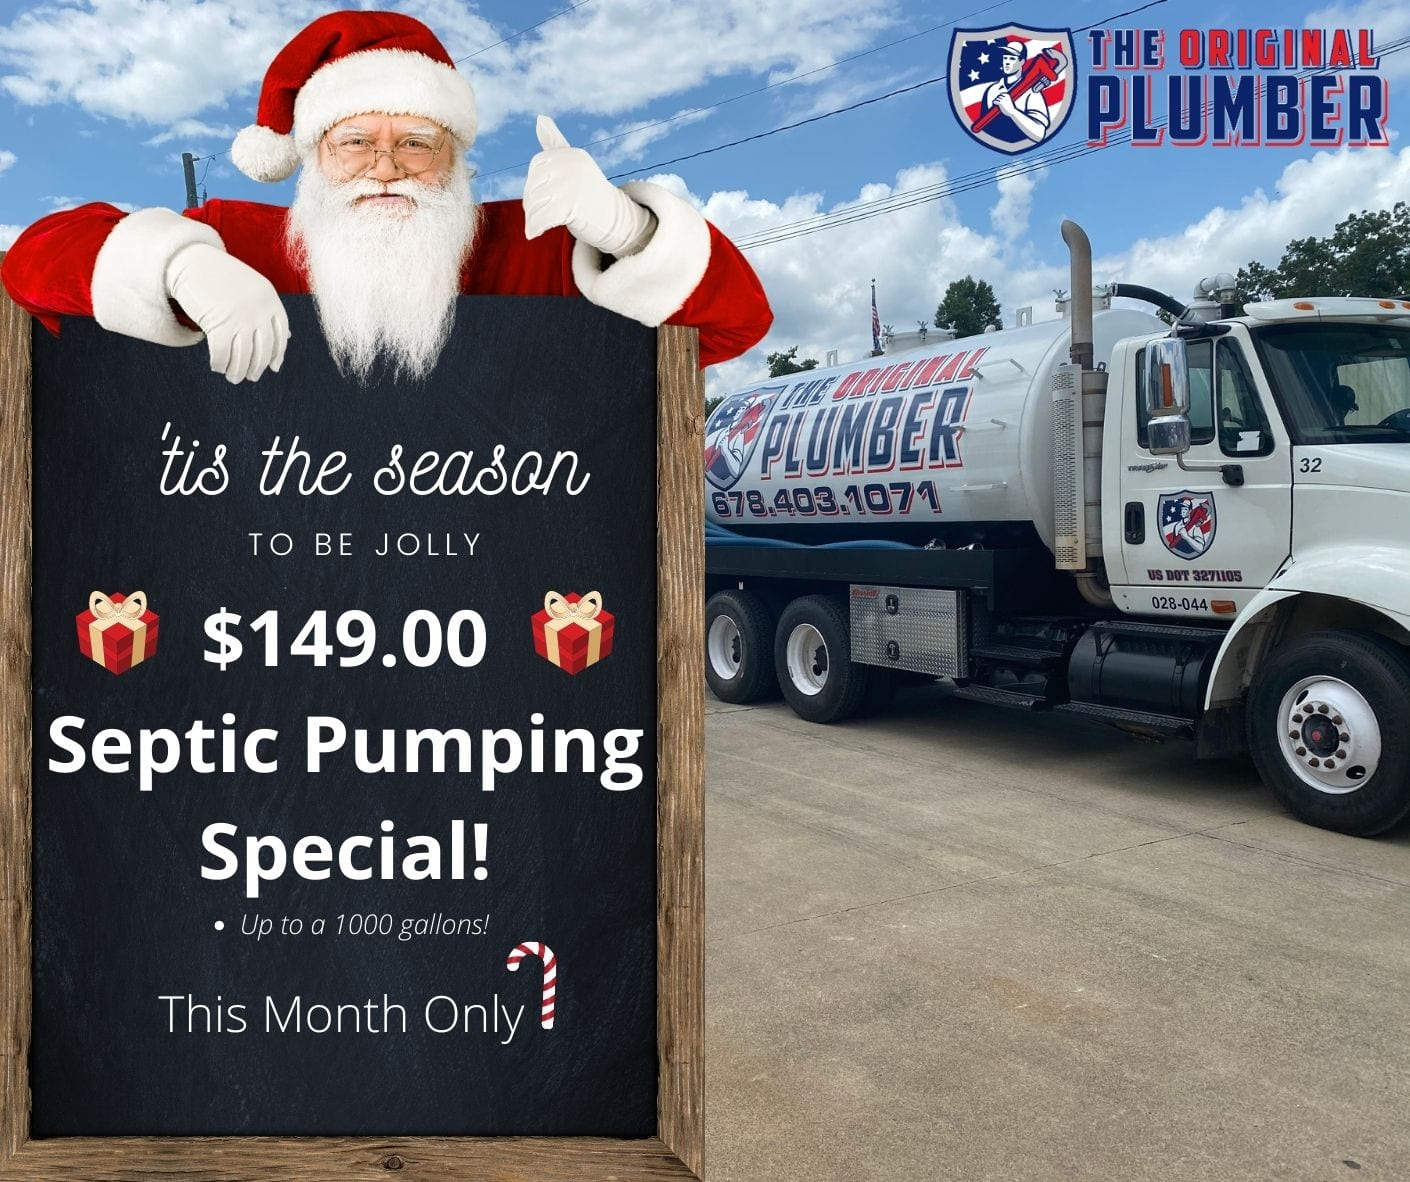 $149 Septic Pumping Special